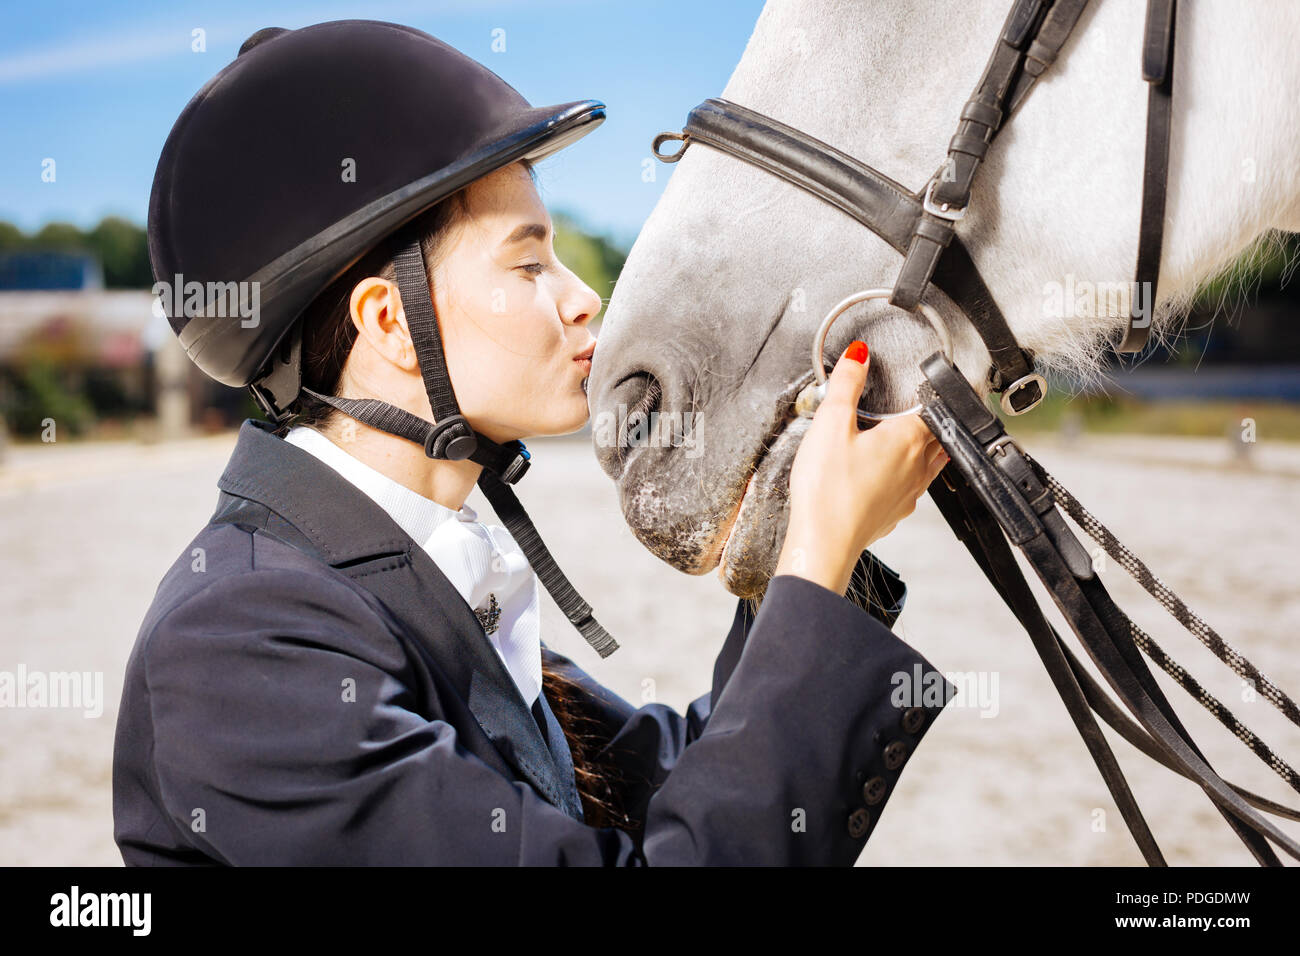 Loving horsewoman with red nail art kissing her white horse - Stock Image